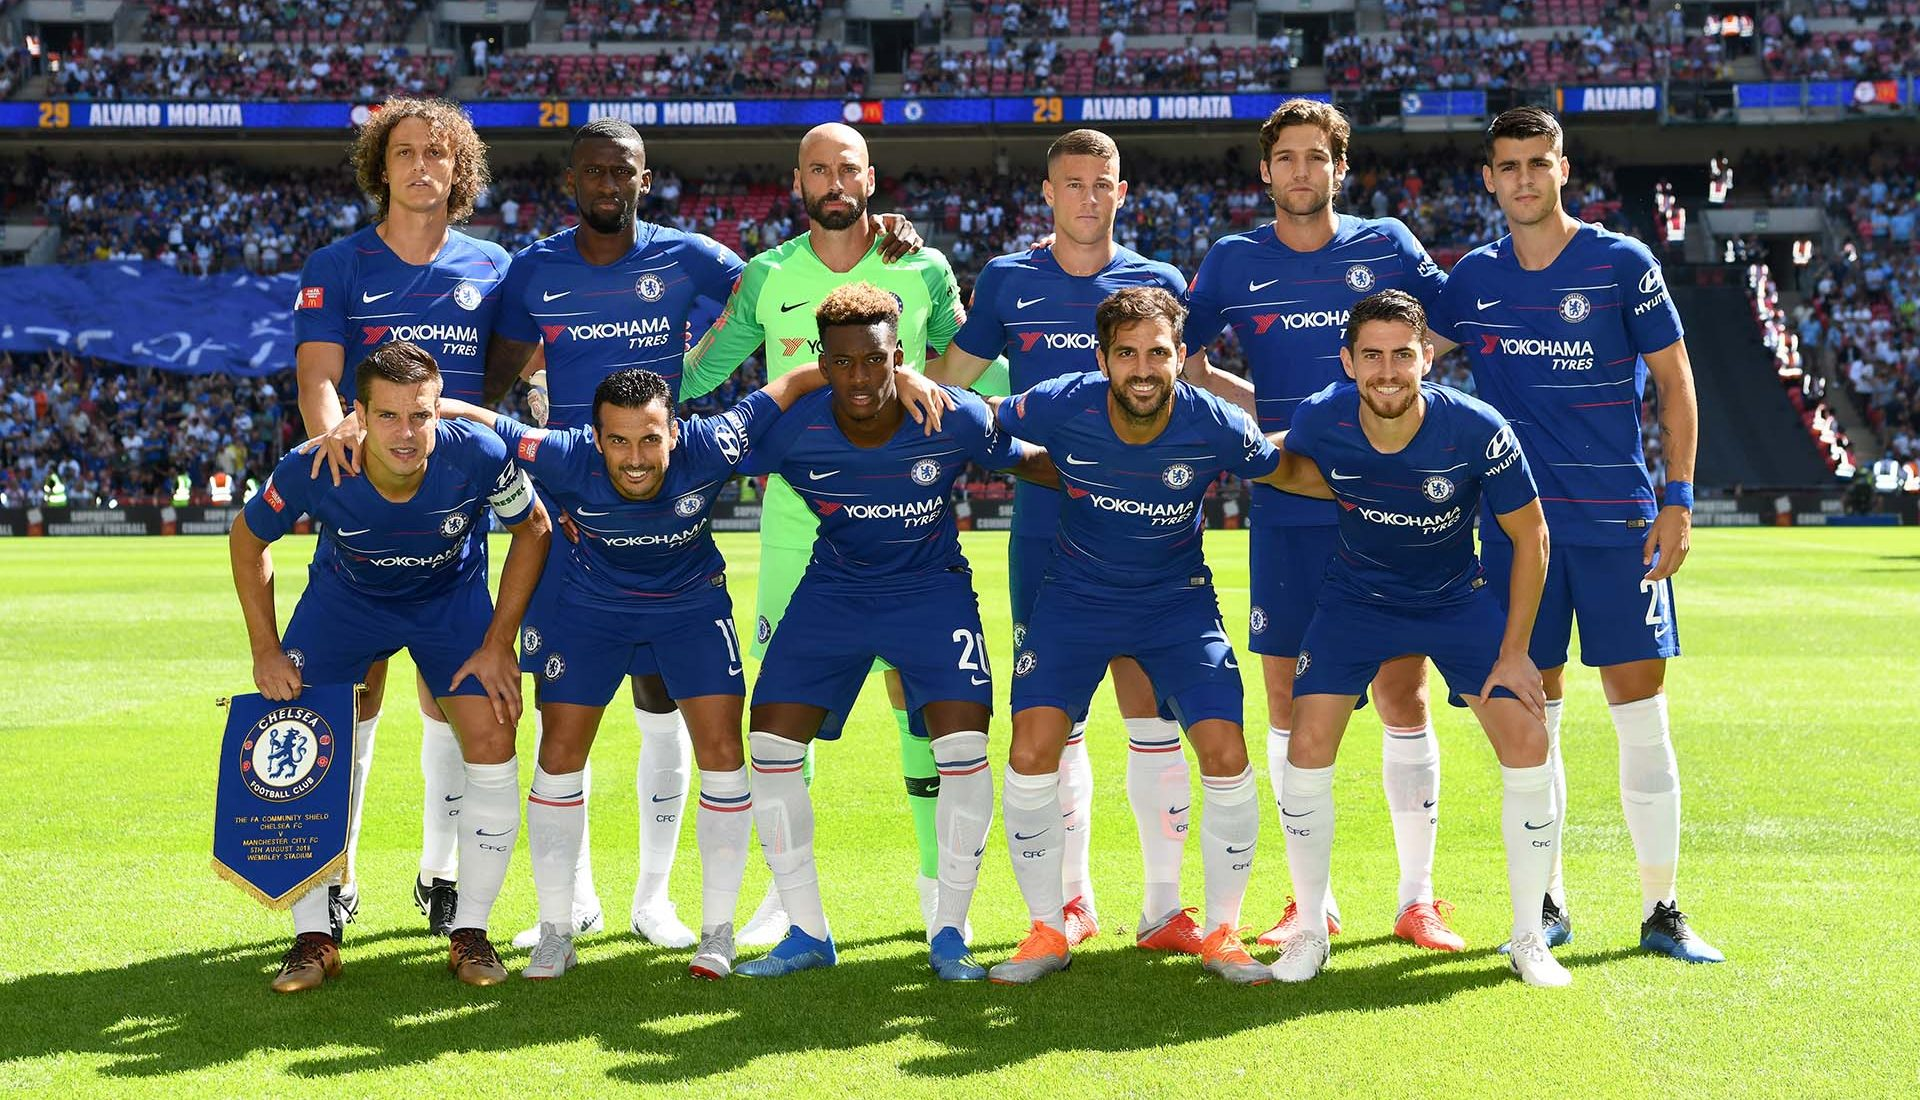 The Chelsea players pose for a team photo prior to the FA Community Shield between Manchester City and Chelsea at Wembley Stadium on August 5, 2018 in London.